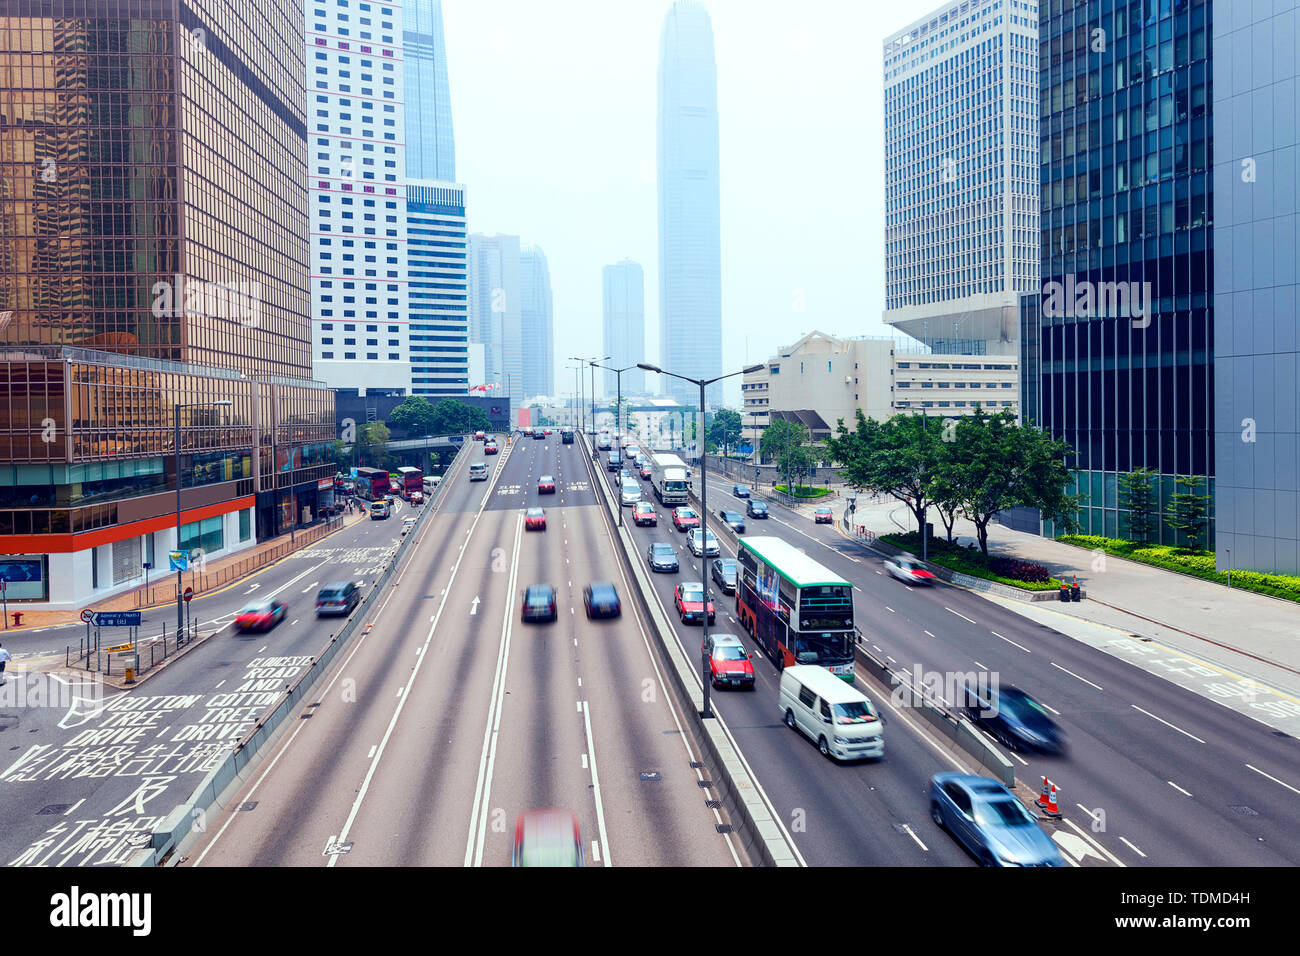 traffic of modern city hongkong at daytime Stock Photo